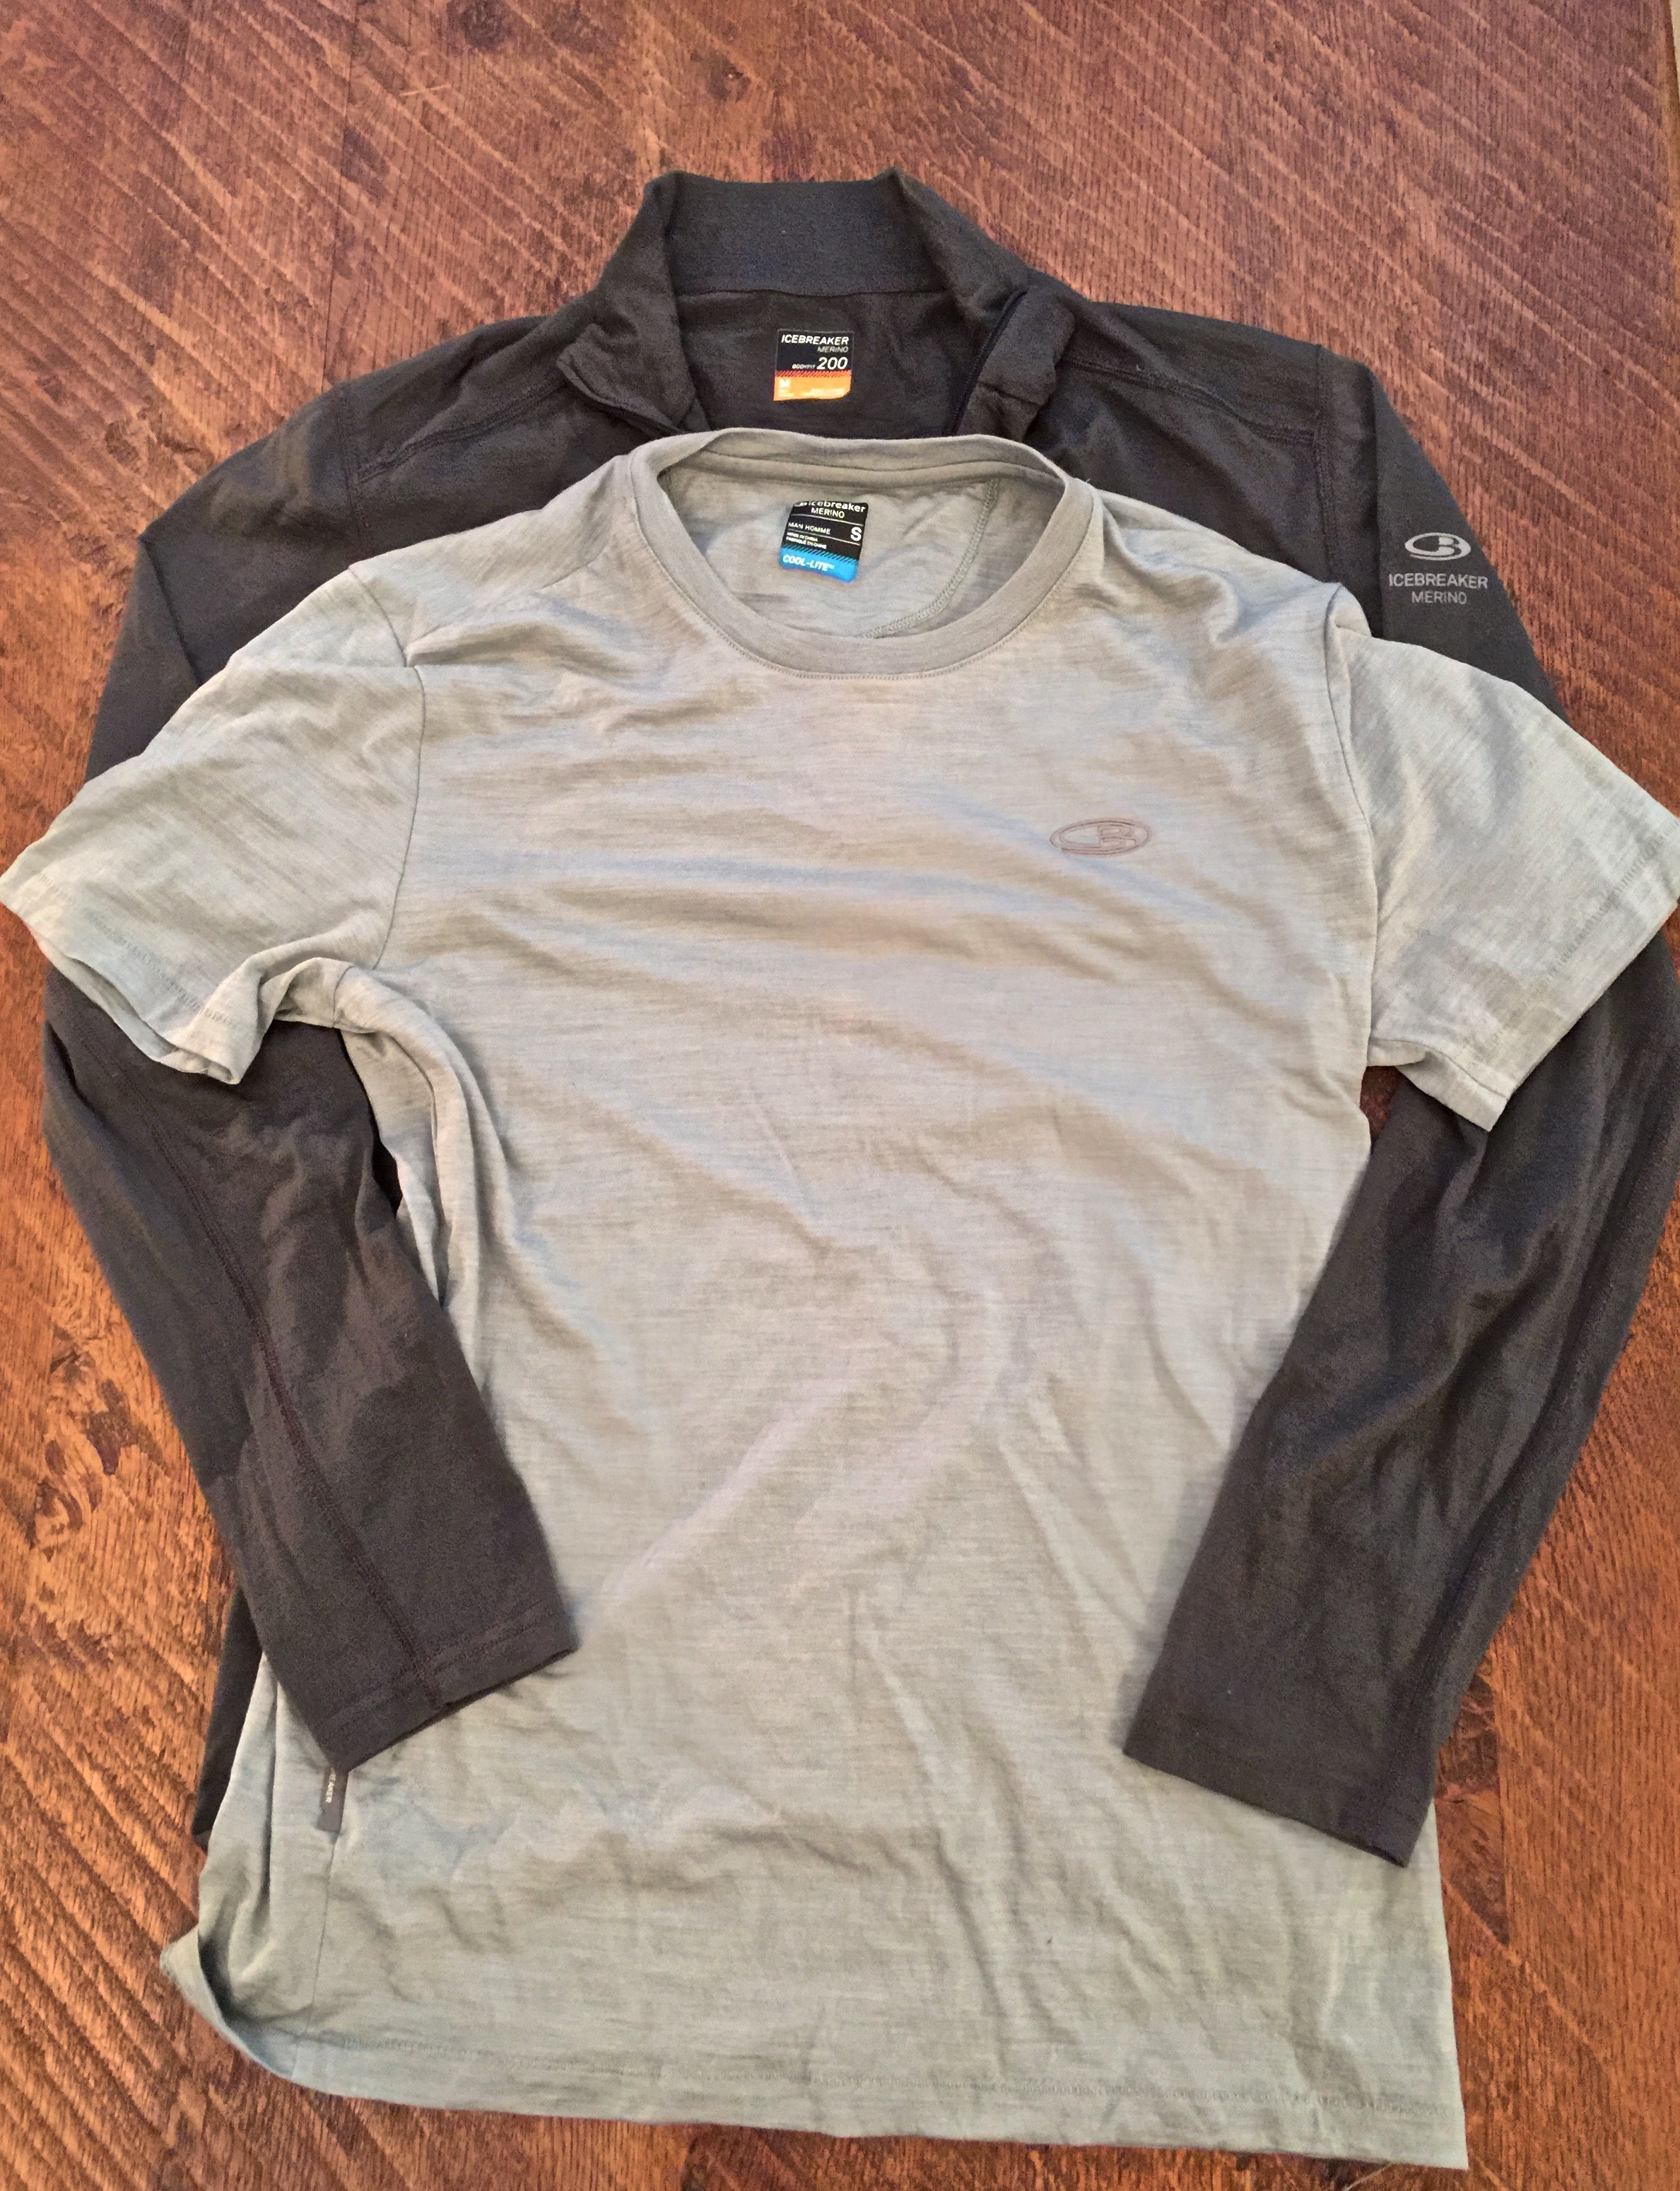 Here's my most common base layer combination. The t-shirt is 65% merino, 20% TENCEL, and 15% Nylon. It does have a tendency to smell more than other items, but it still does the job.